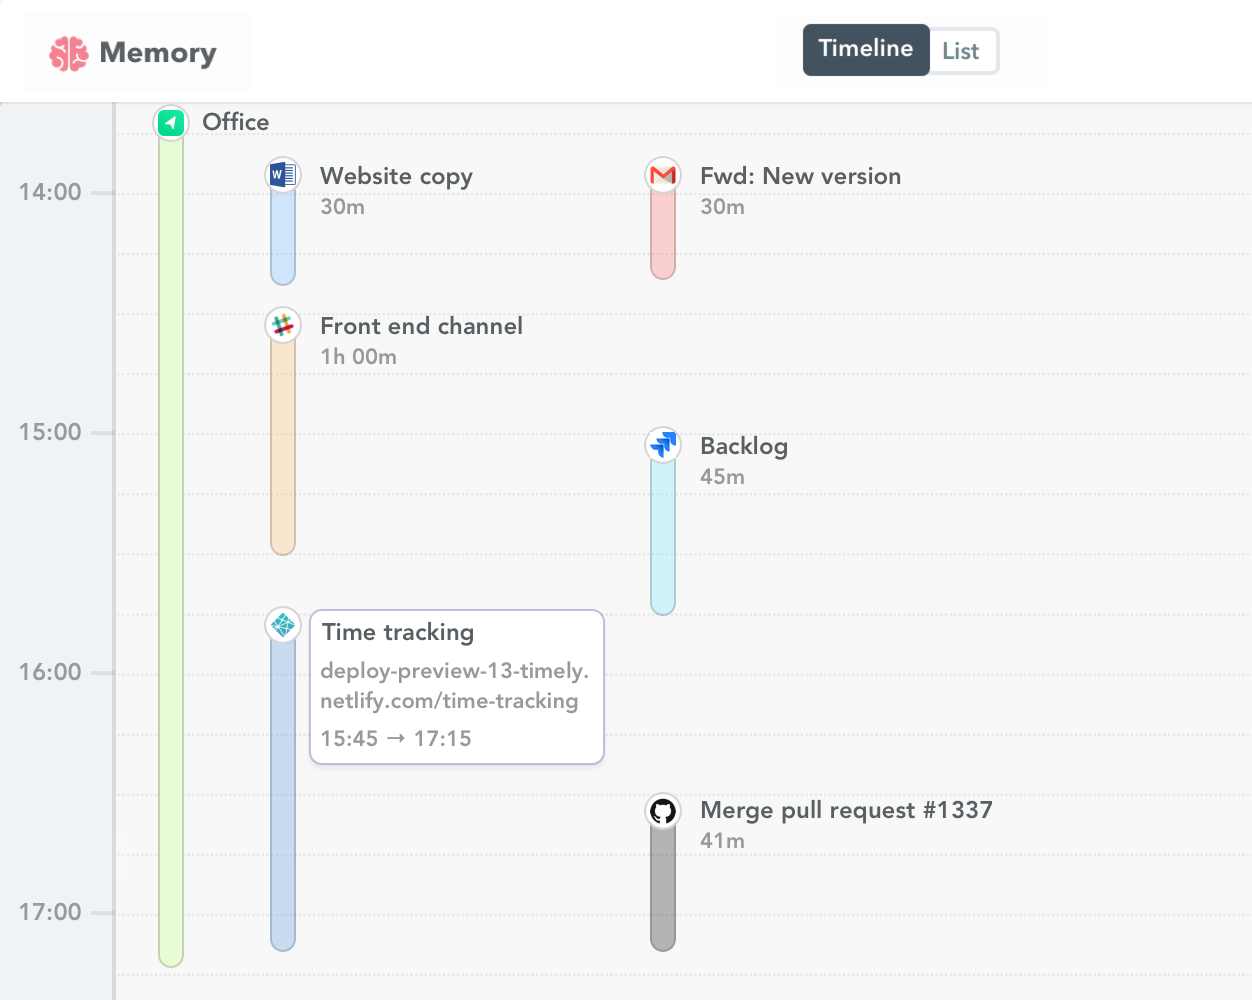 Netlify time tracking